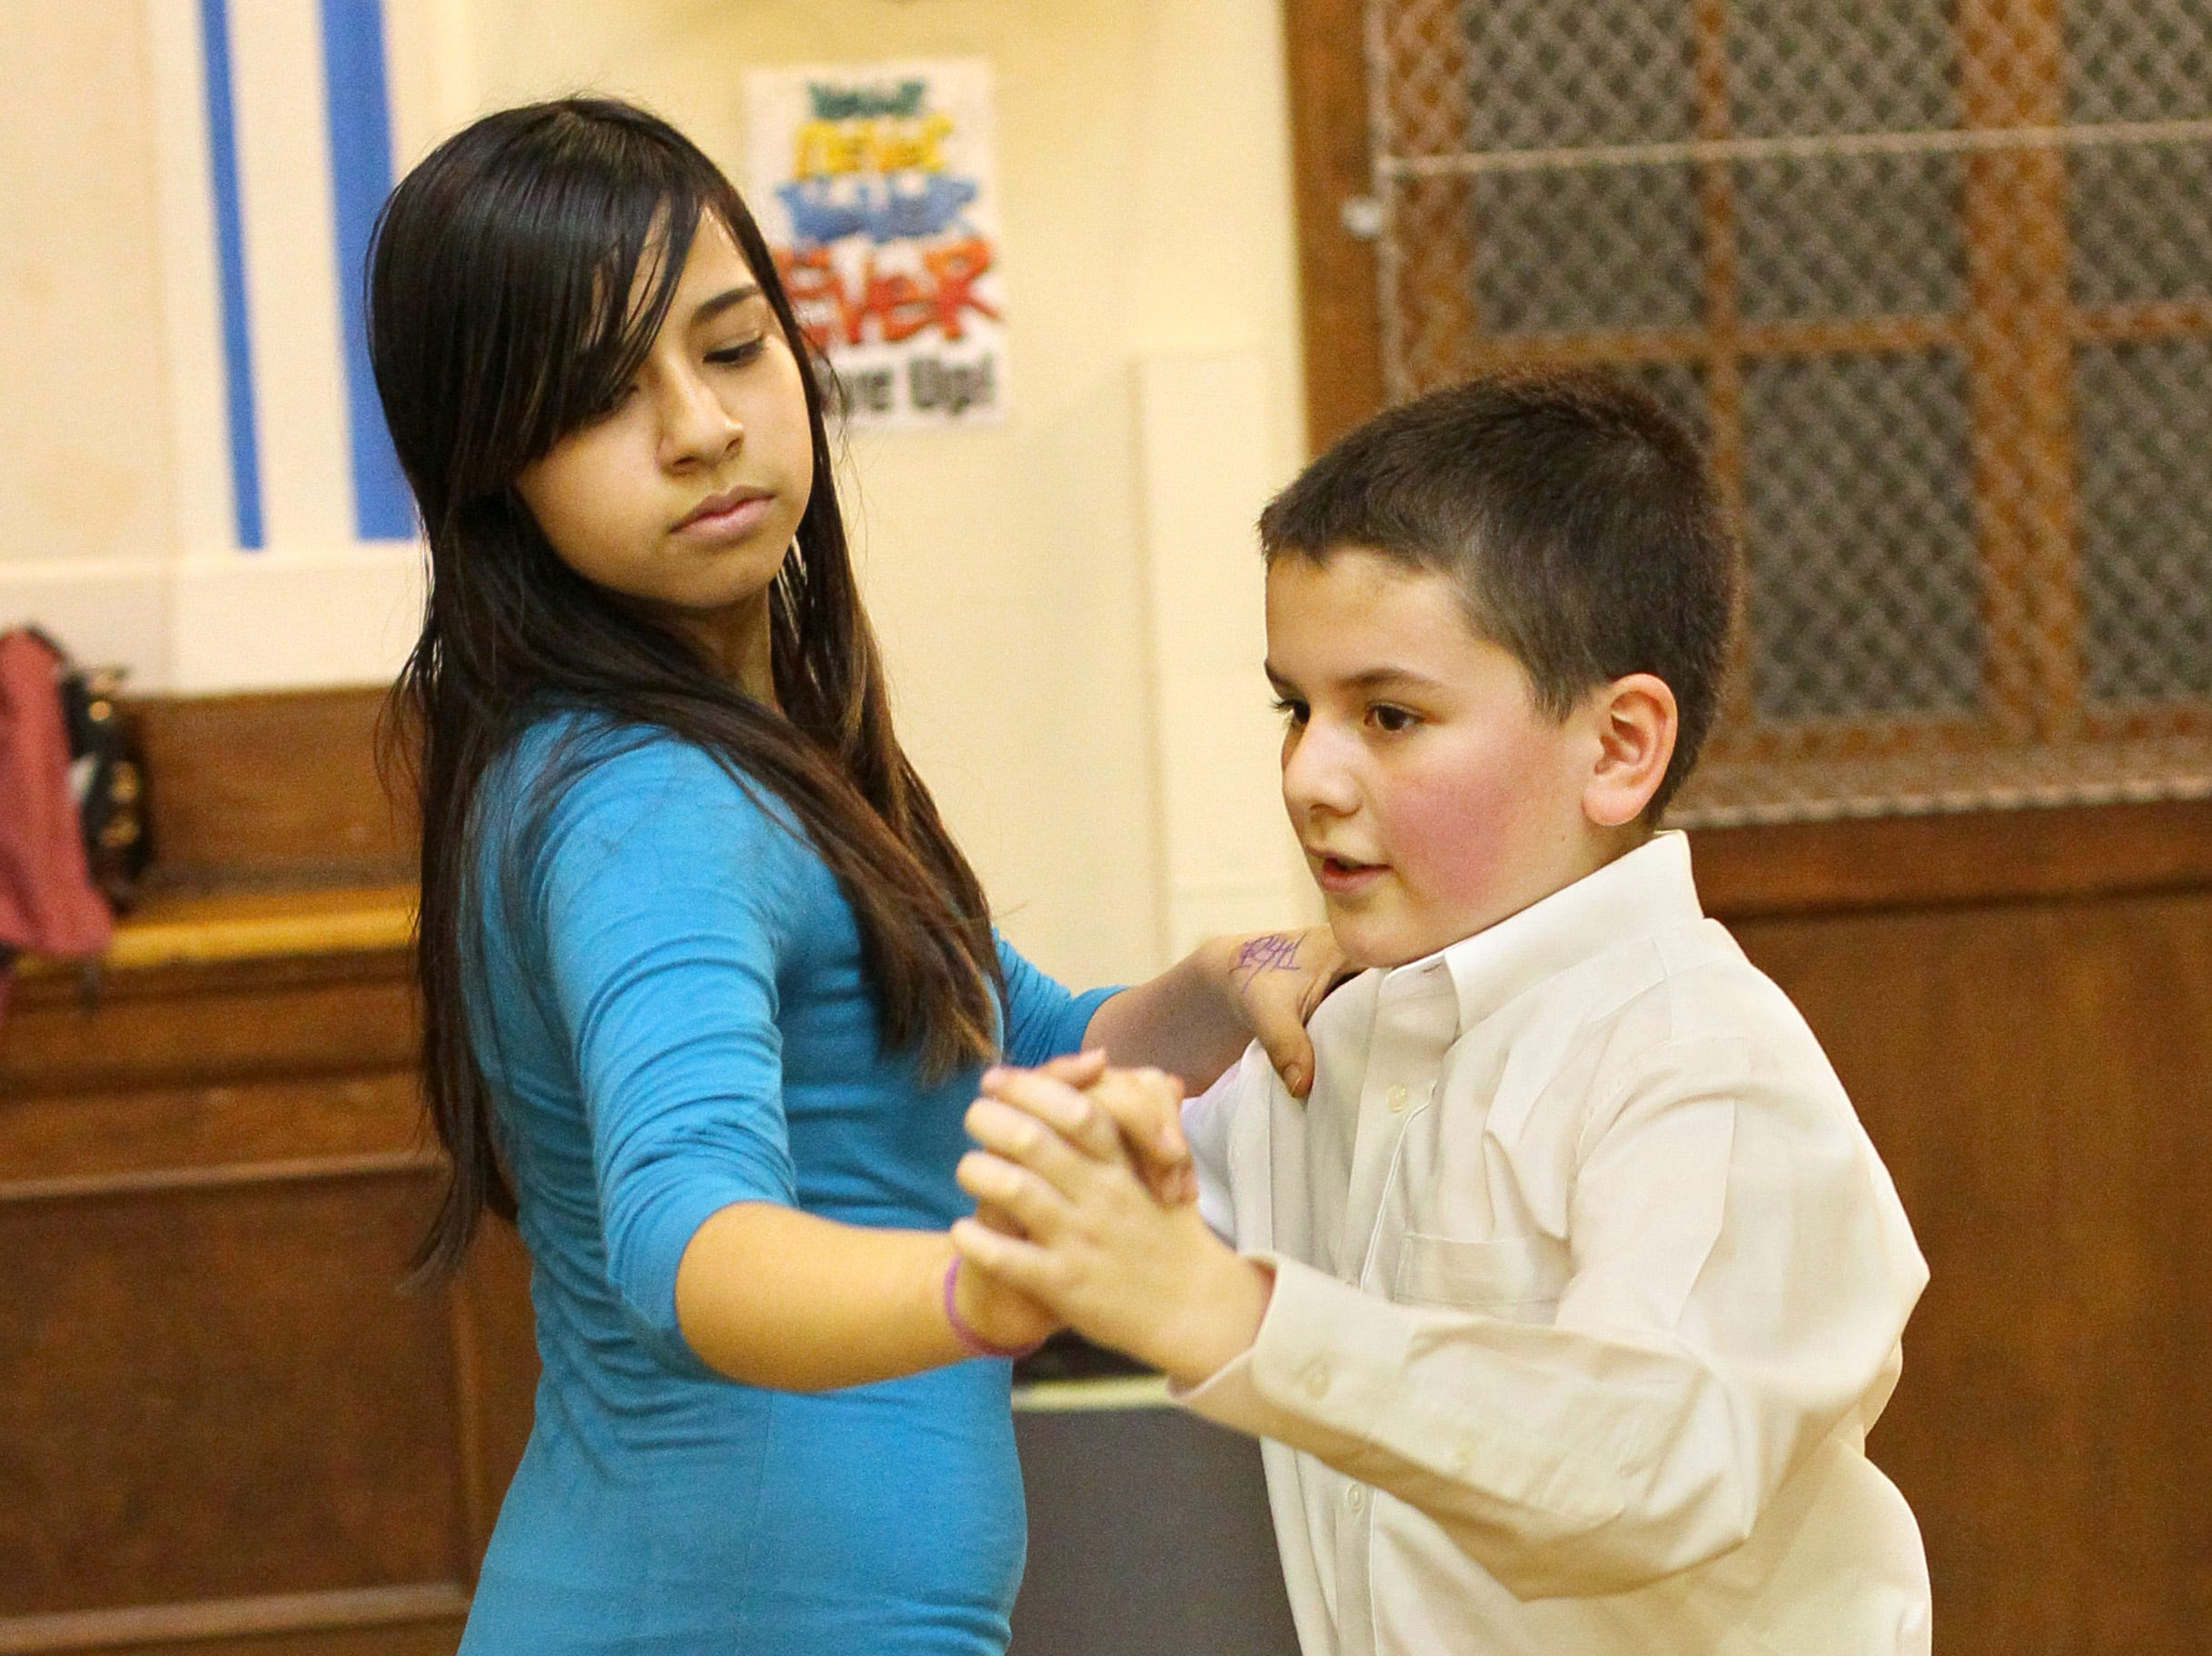 2011: Luis Mora dances with classmate Tanith Husein at Vieau School in Milwaukee. They are preparing for the Mad Hot Ballroom at the Bradley Center.